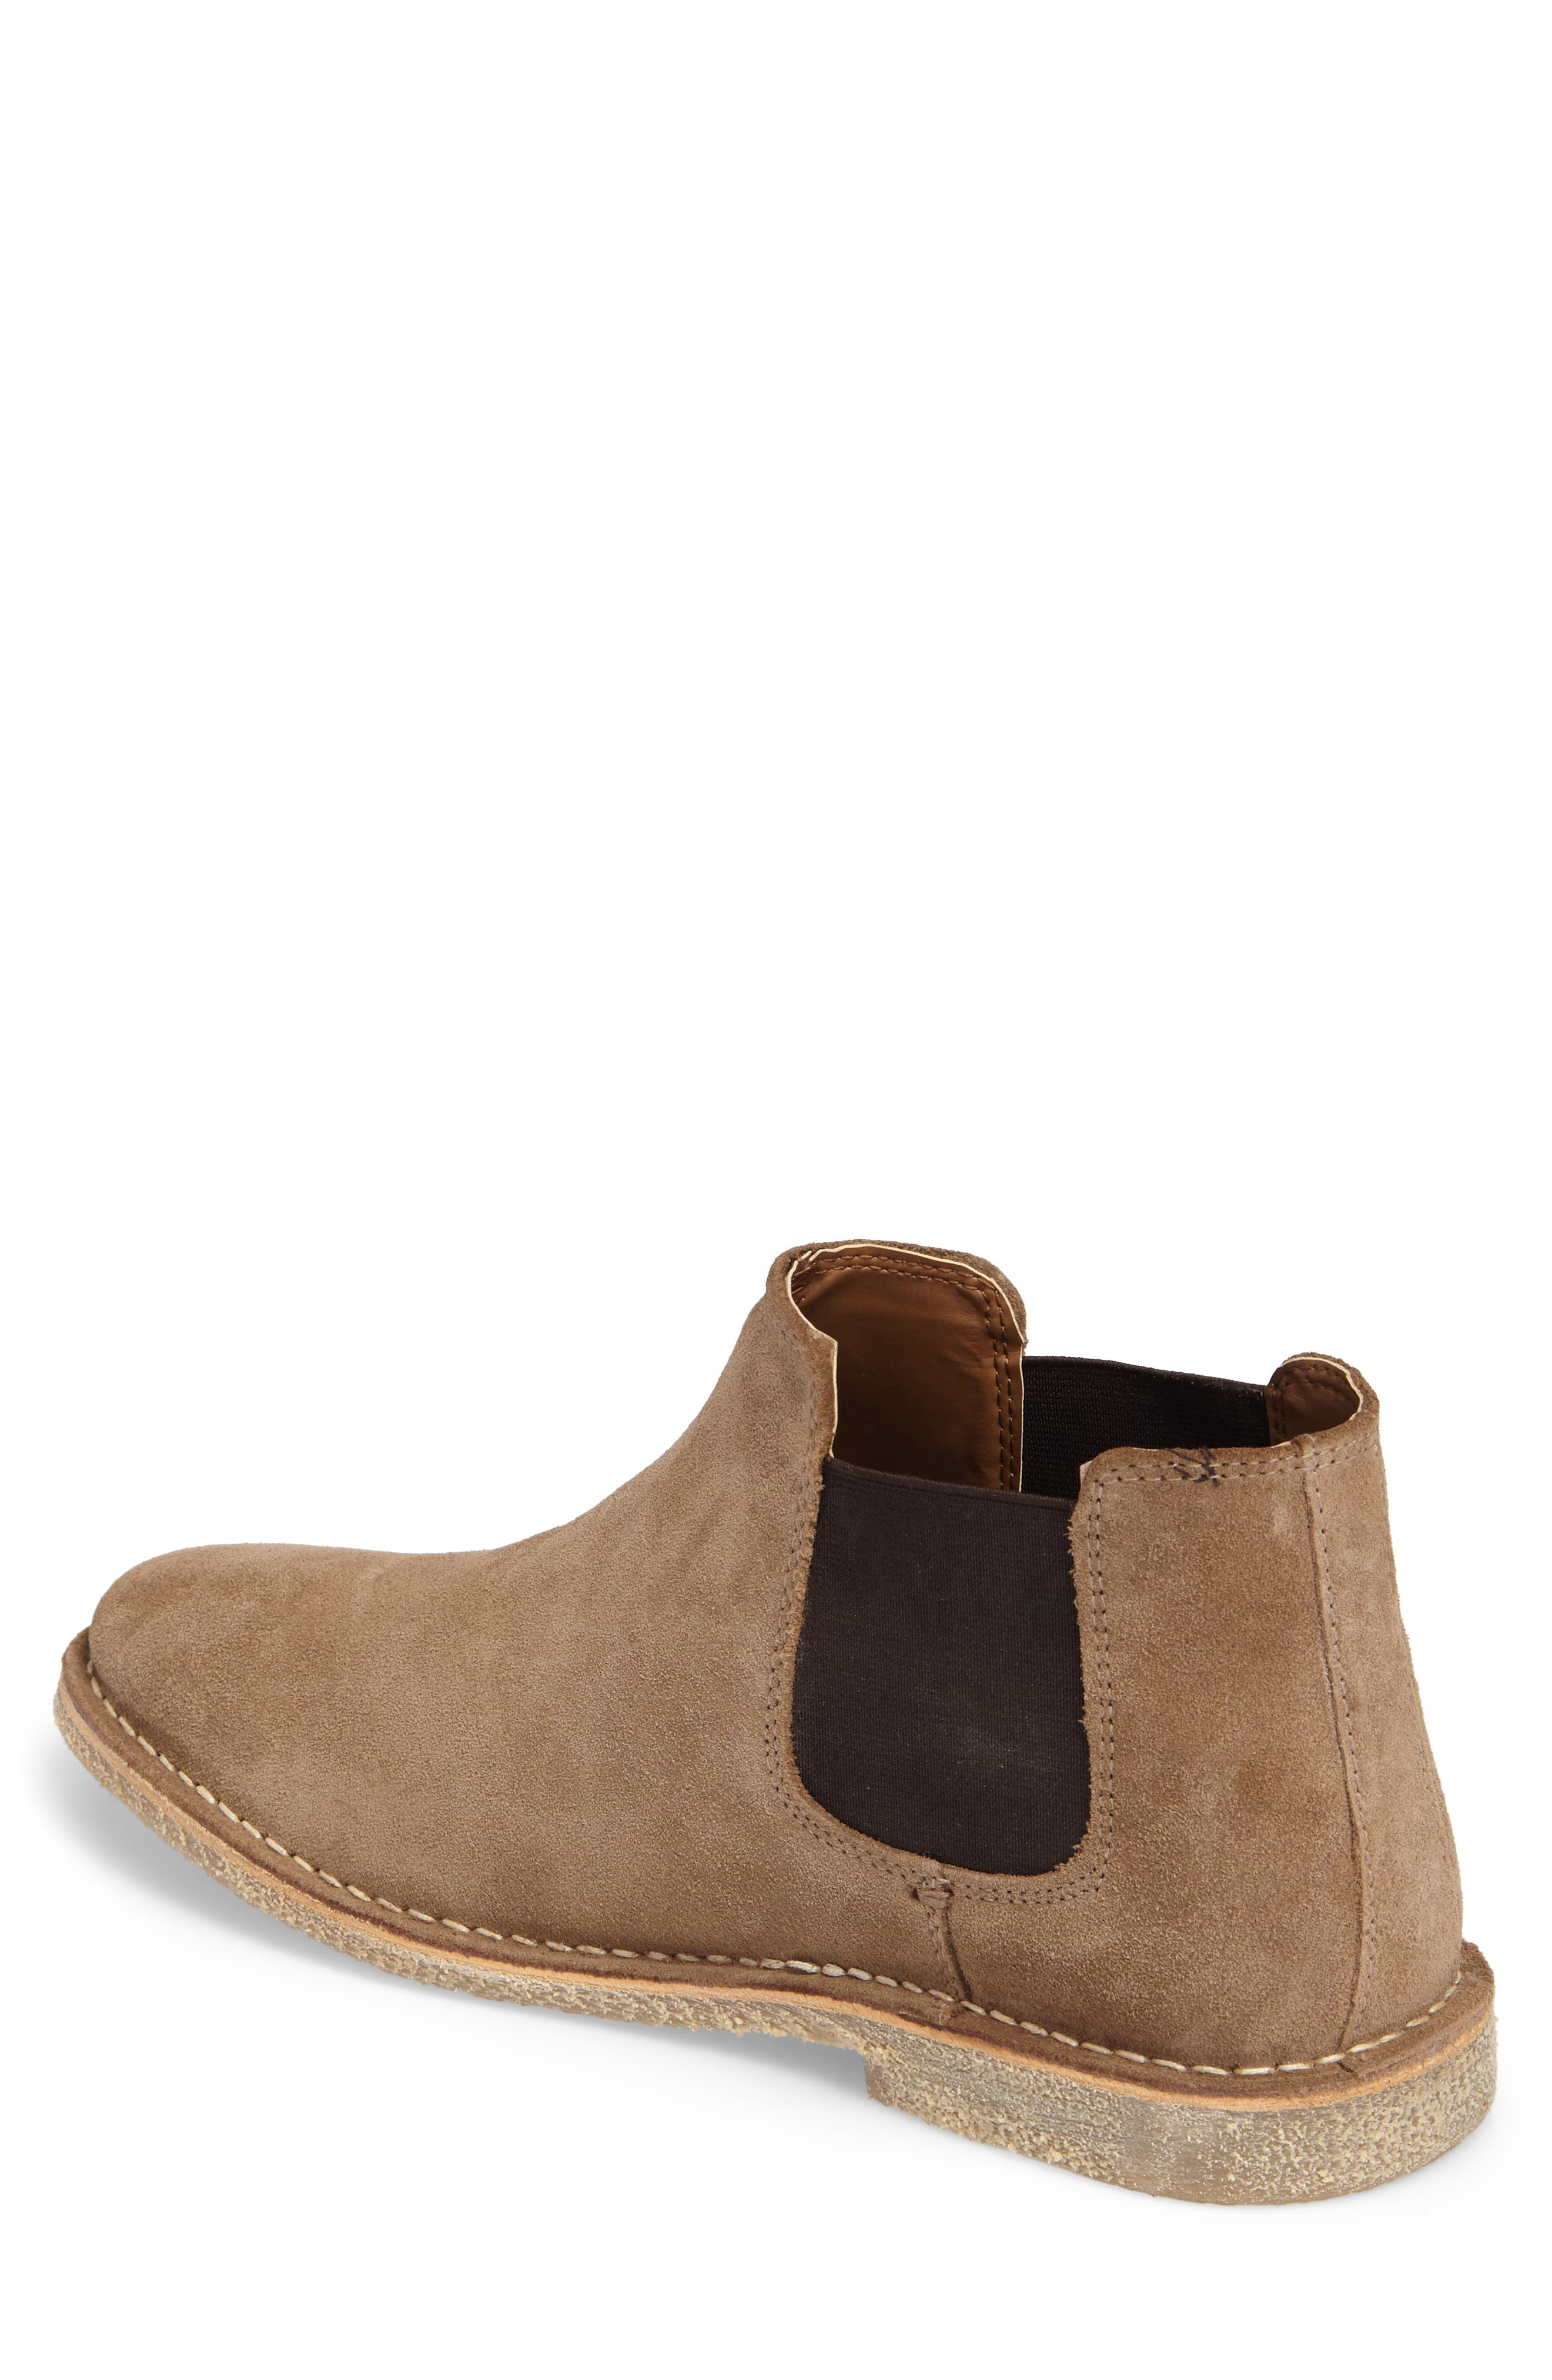 Kenneth Cole Reaction Chelsea Boot,                             Alternate thumbnail 2, color,                             205